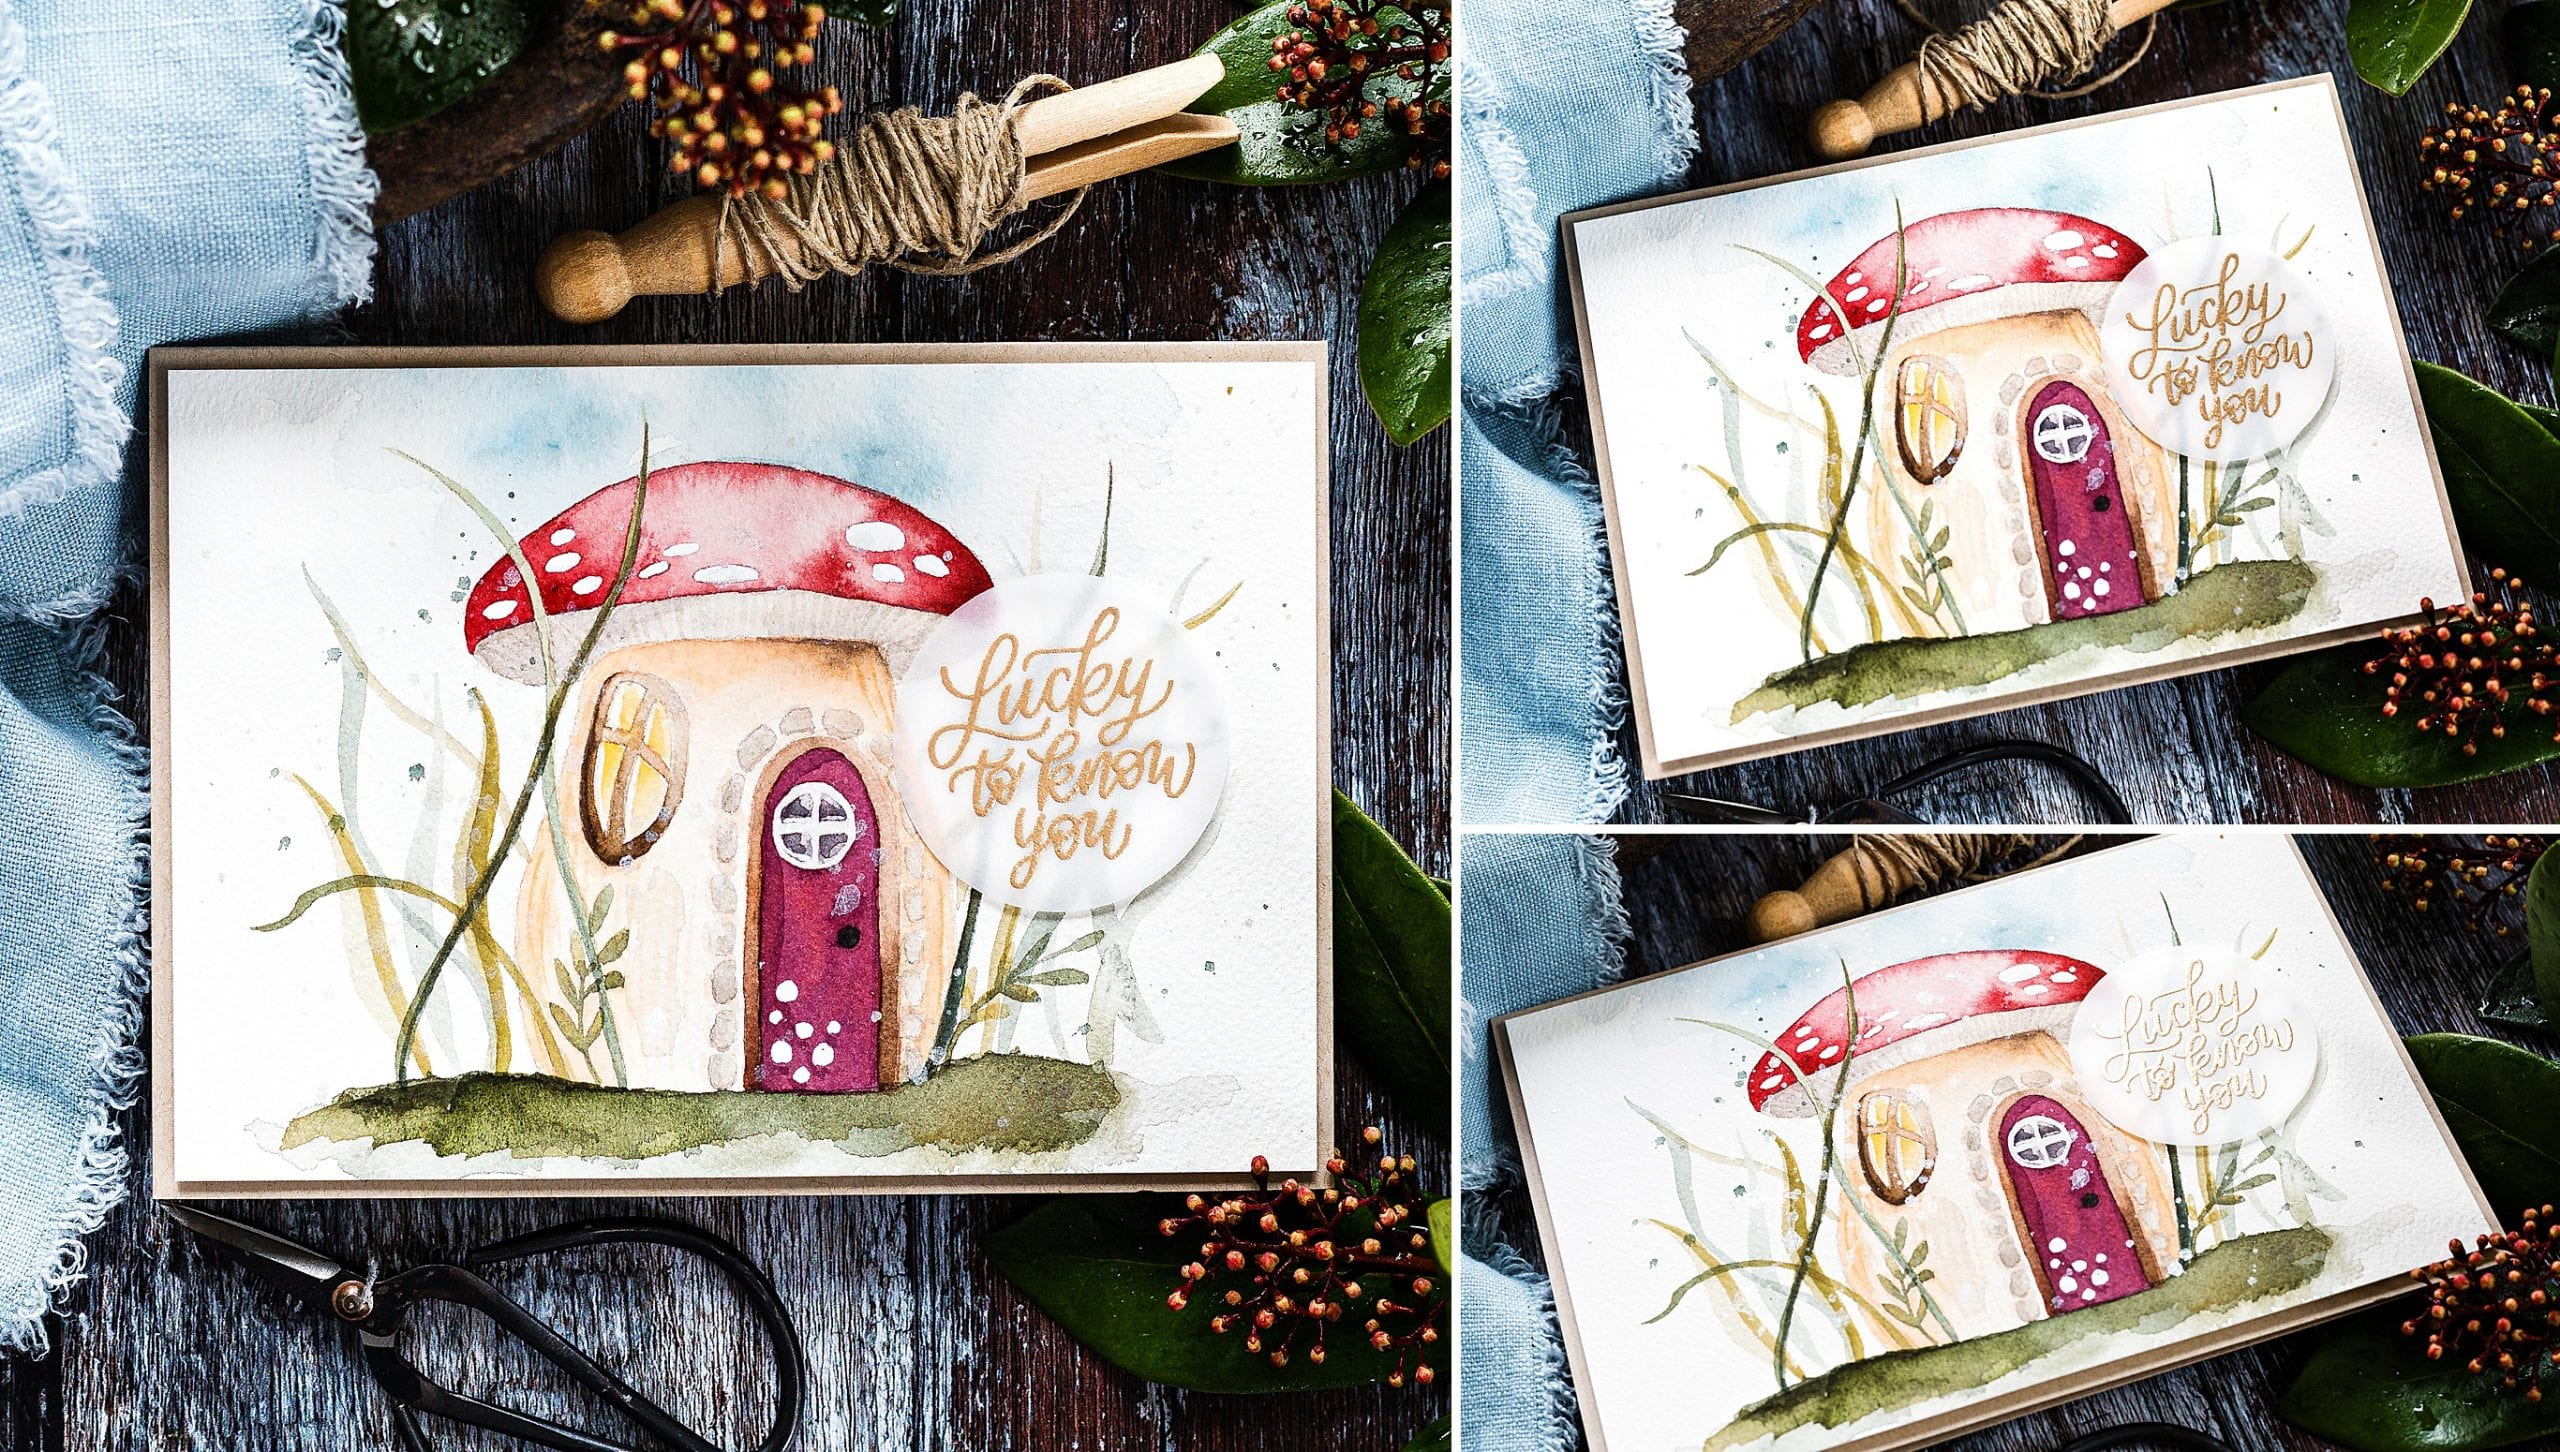 I used an adorable Mushroom House when painting this card! Such cute details you can add to make the toadstool homely. Handmade card by Debby Hughes #homemade #handmade #watercolor